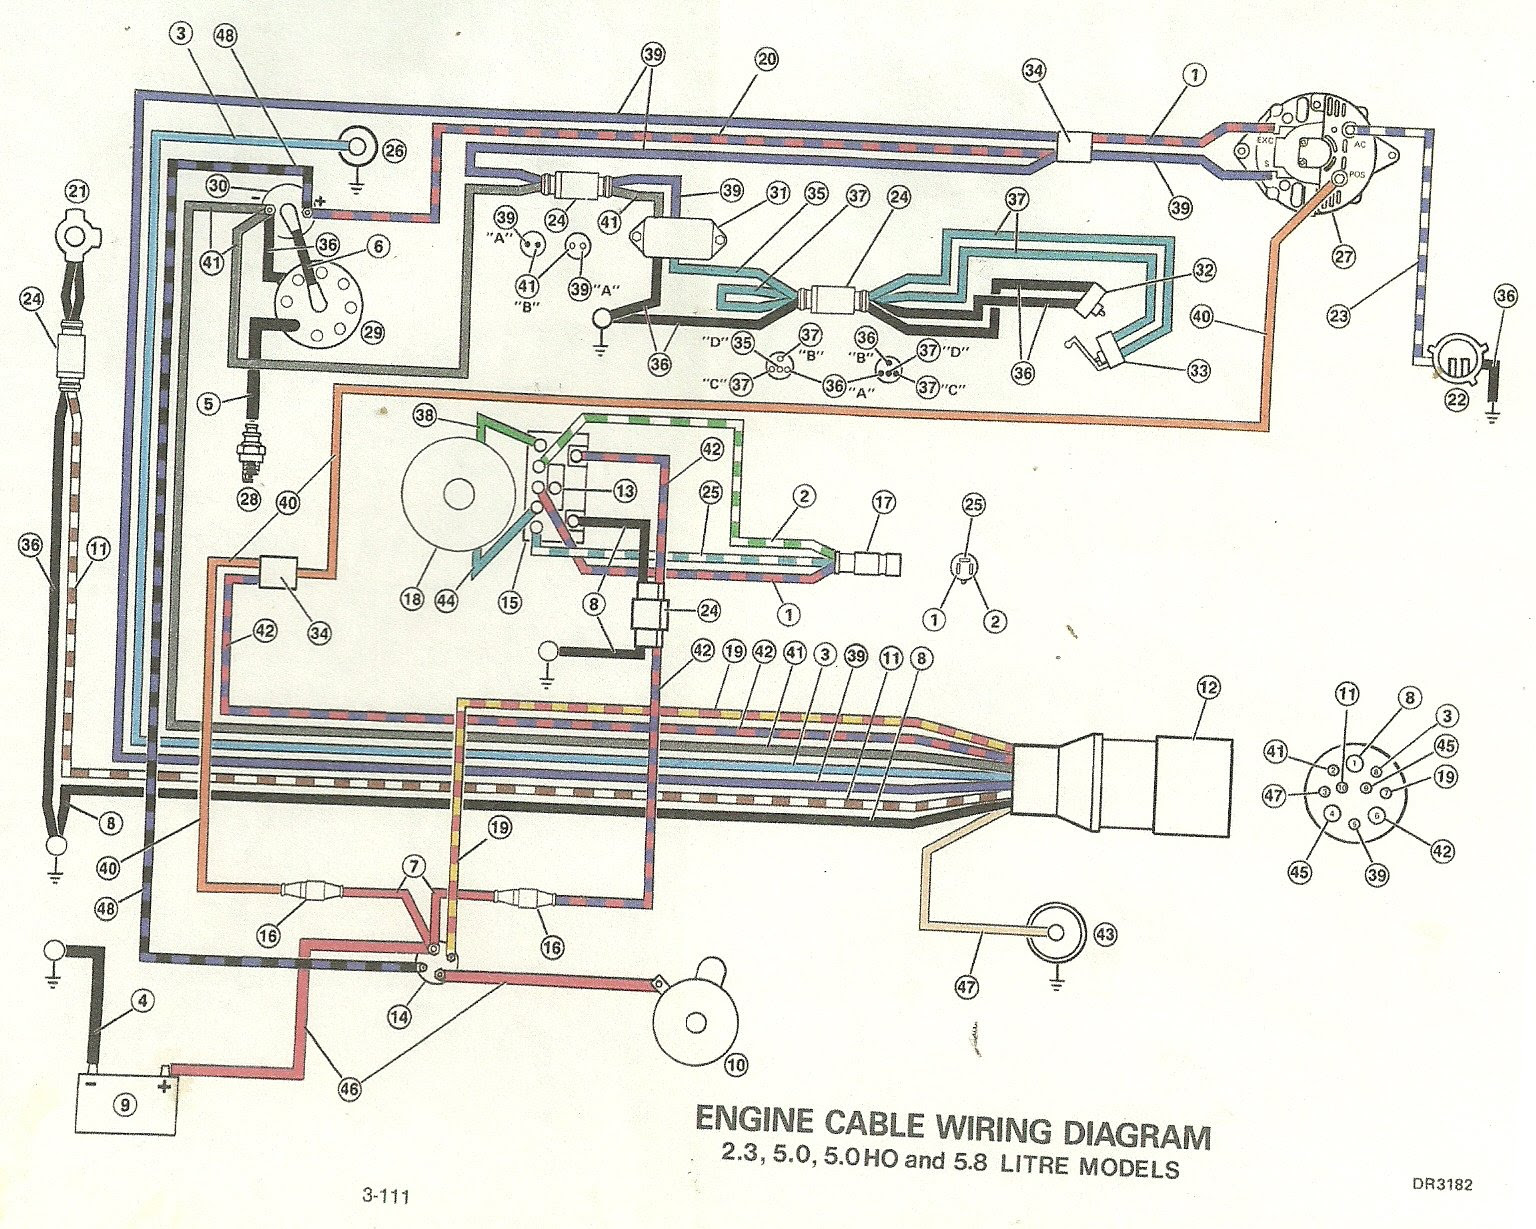 Diagram 1989 Omc 305 Inboard Wiring Diagram Full Version Hd Quality Wiring Diagram Diagramsstepp Pretoriani It